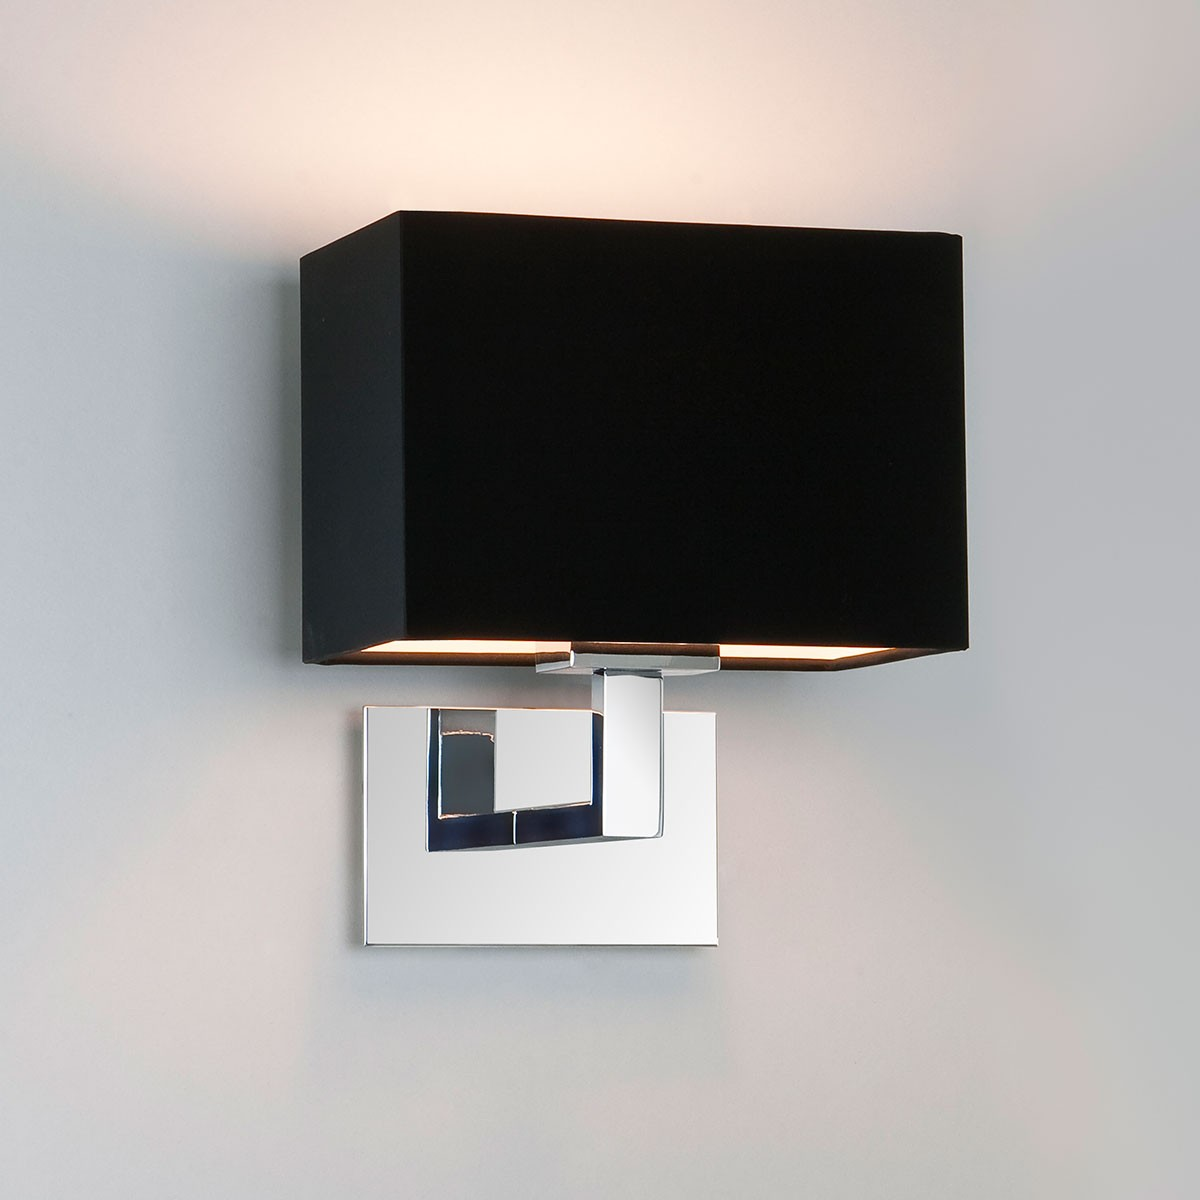 Astro Connaught Polished Chrome Wall Light with Black Shade at UK Electrical Supplies.